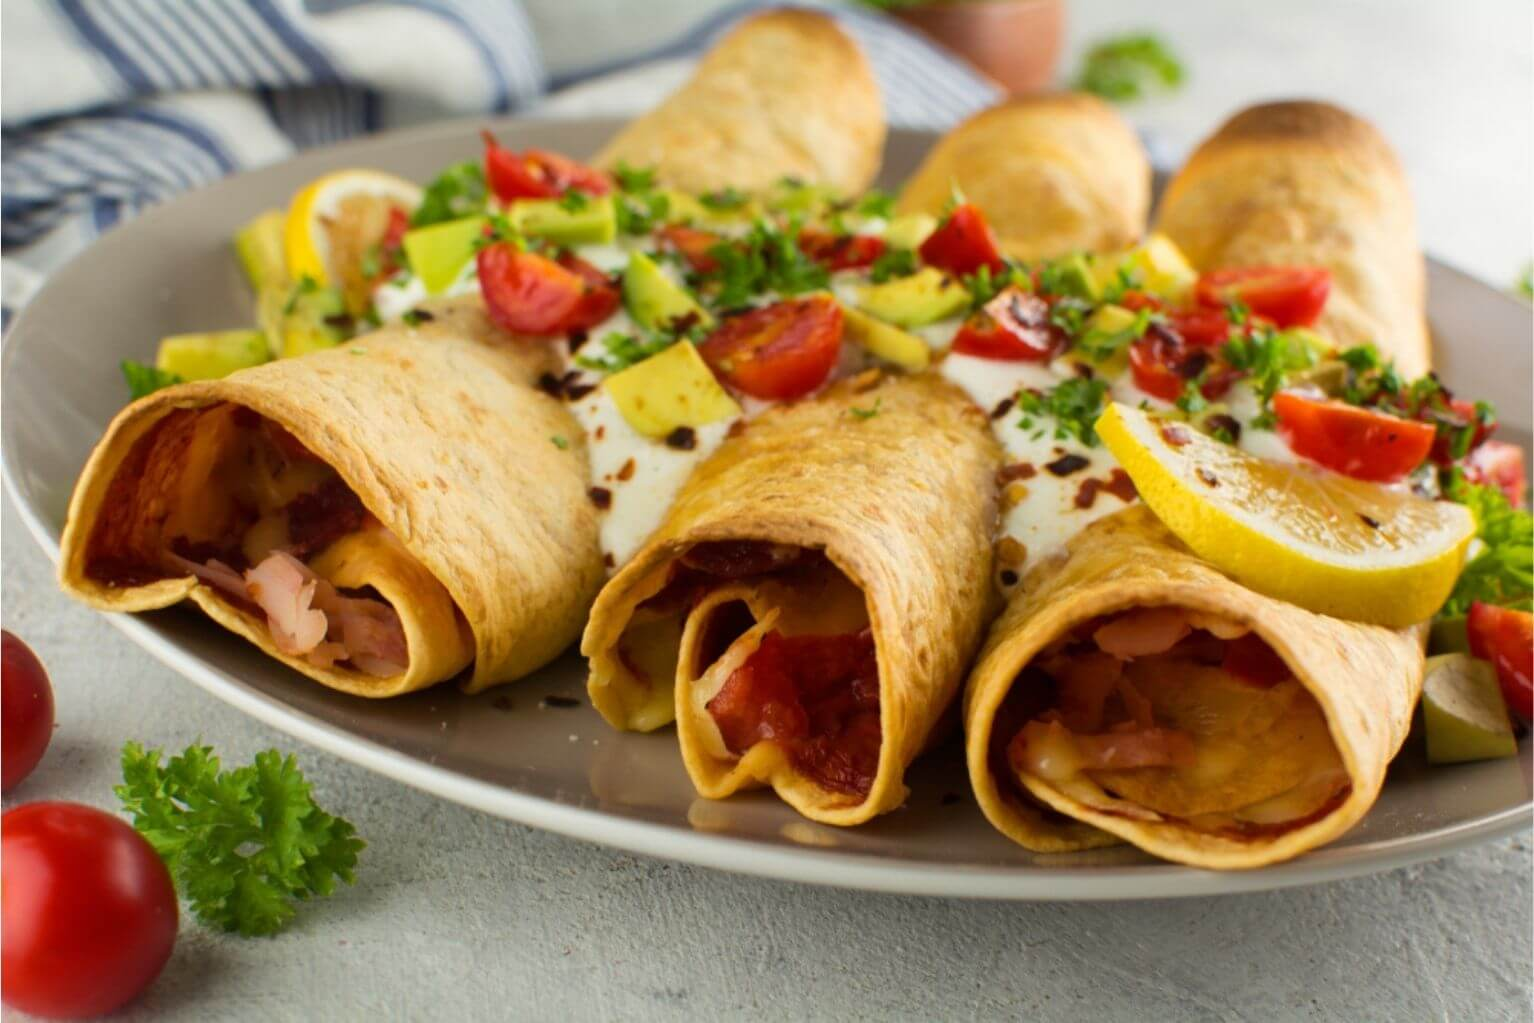 Three taquitos with meat, and cheese inside low carb tortillas on a gray plate on a table.